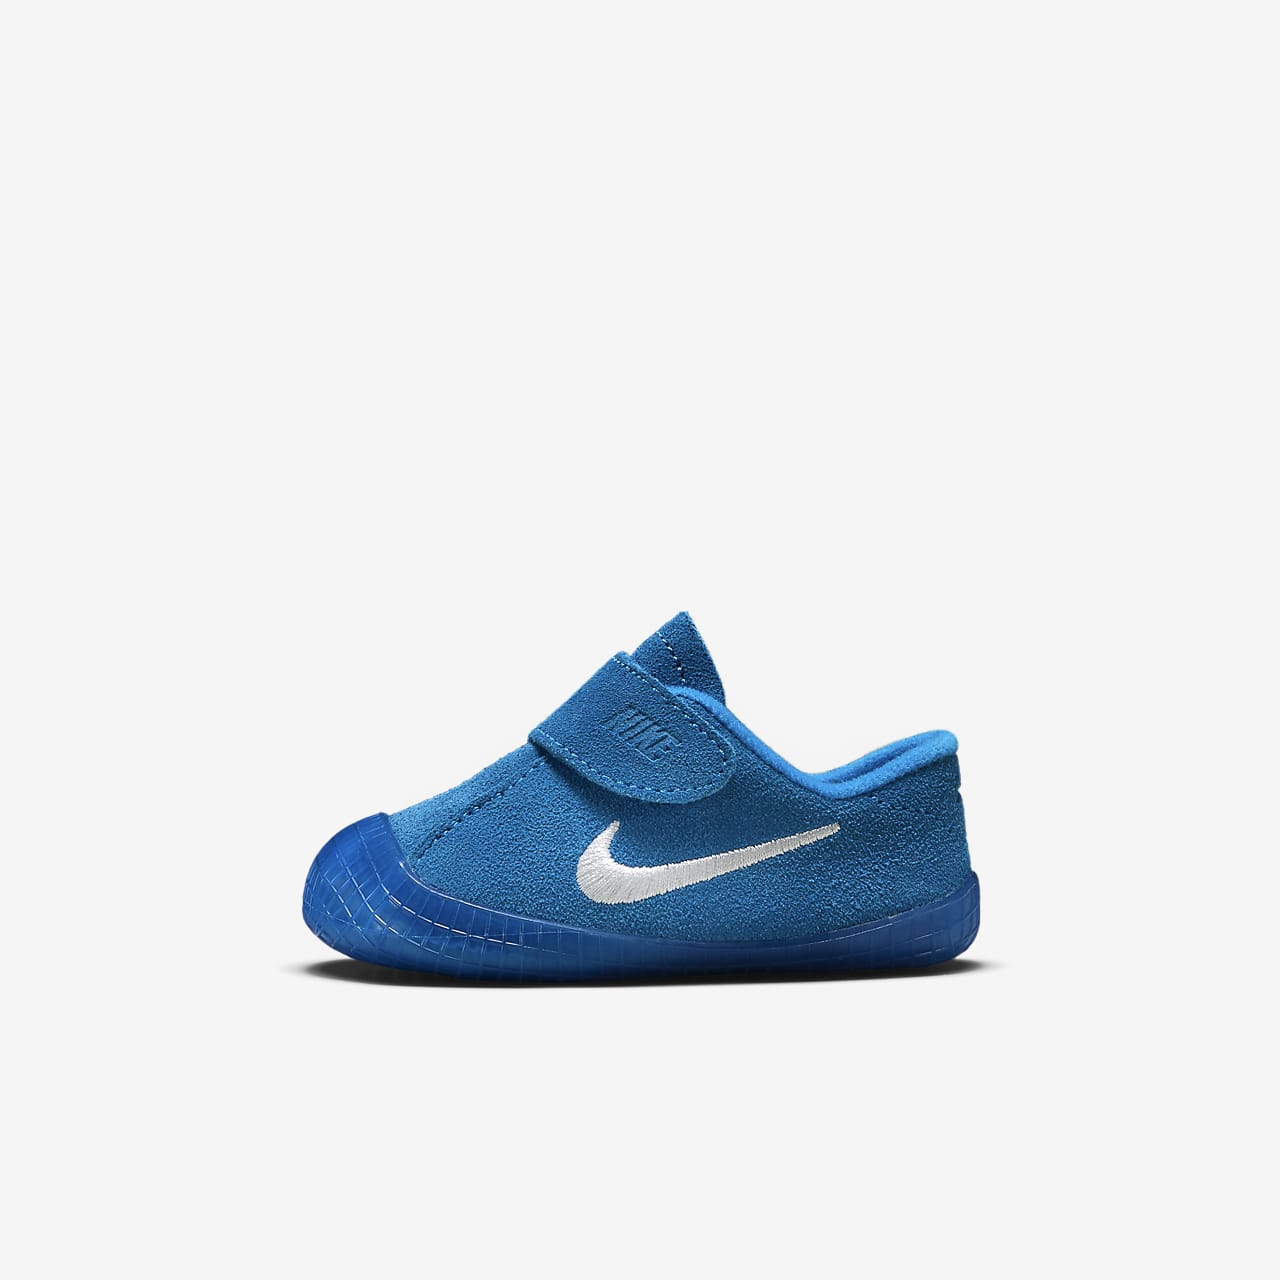 chausson sneakers nike